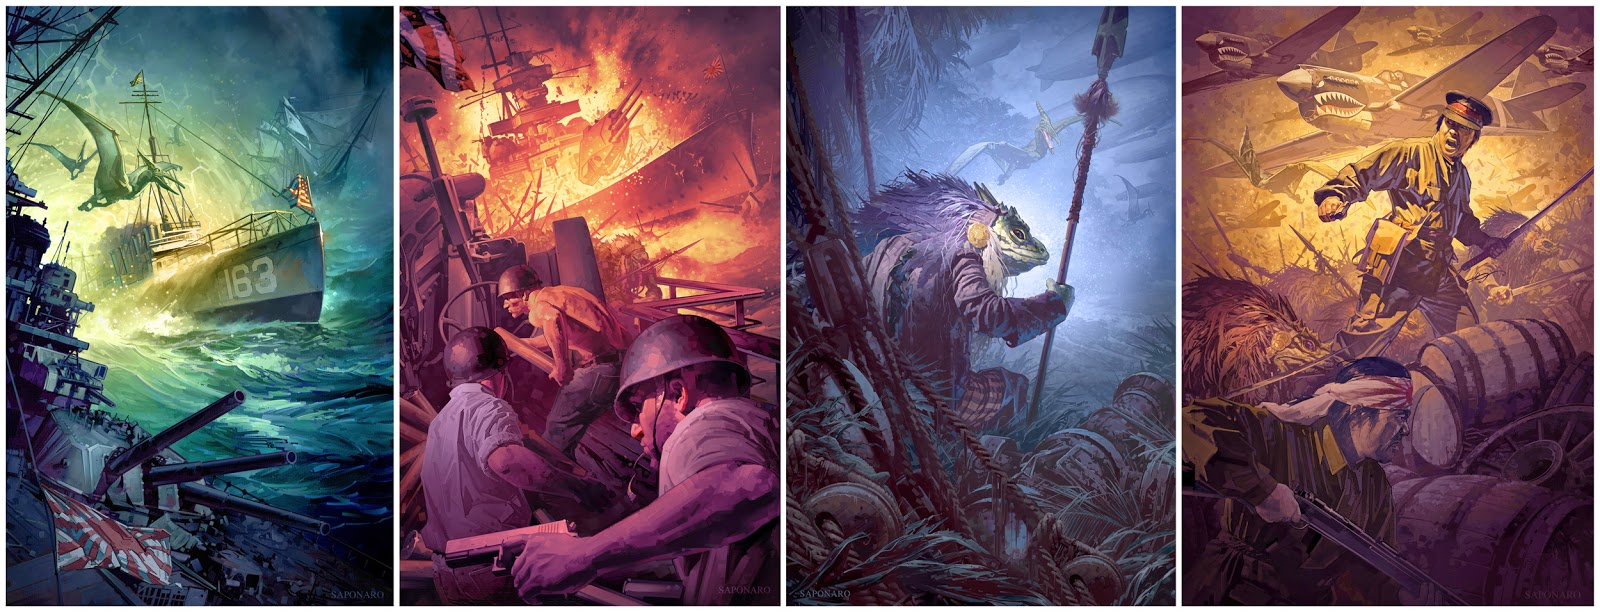 The four final painted covers for Taylor Anderson's Destroyermen series published by the Science Fiction Book club.